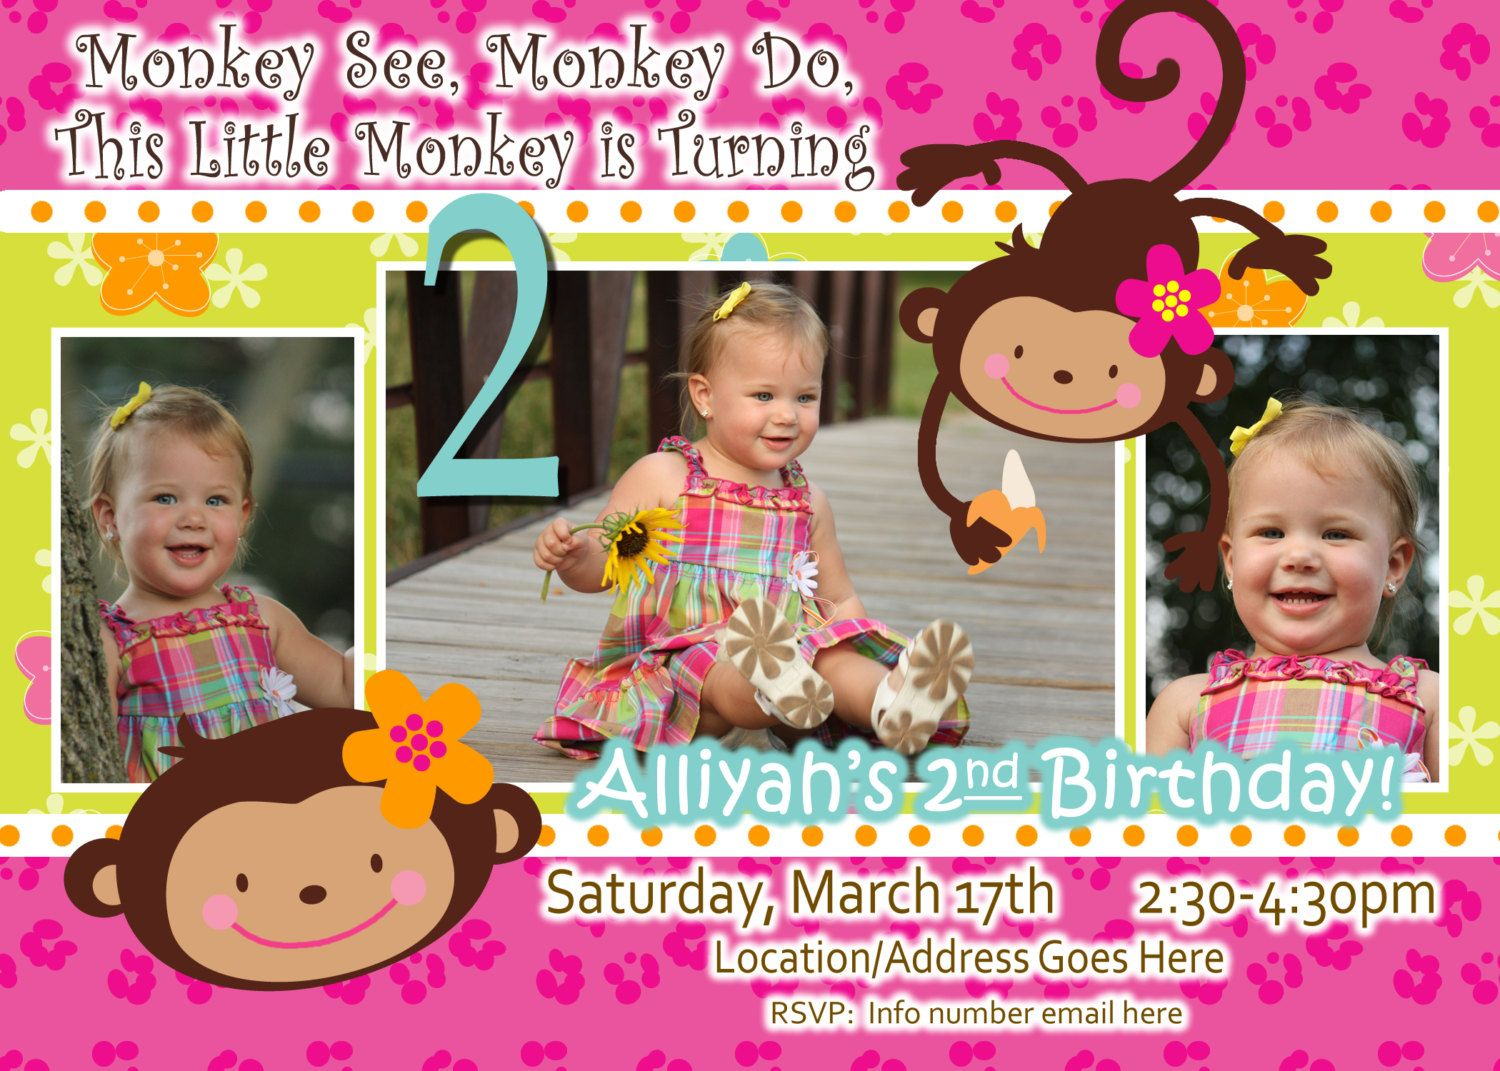 Monkey Love Invite Birthday Photo Invite Year Old Years Old - Birthday invitation wording for 1 year old baby girl